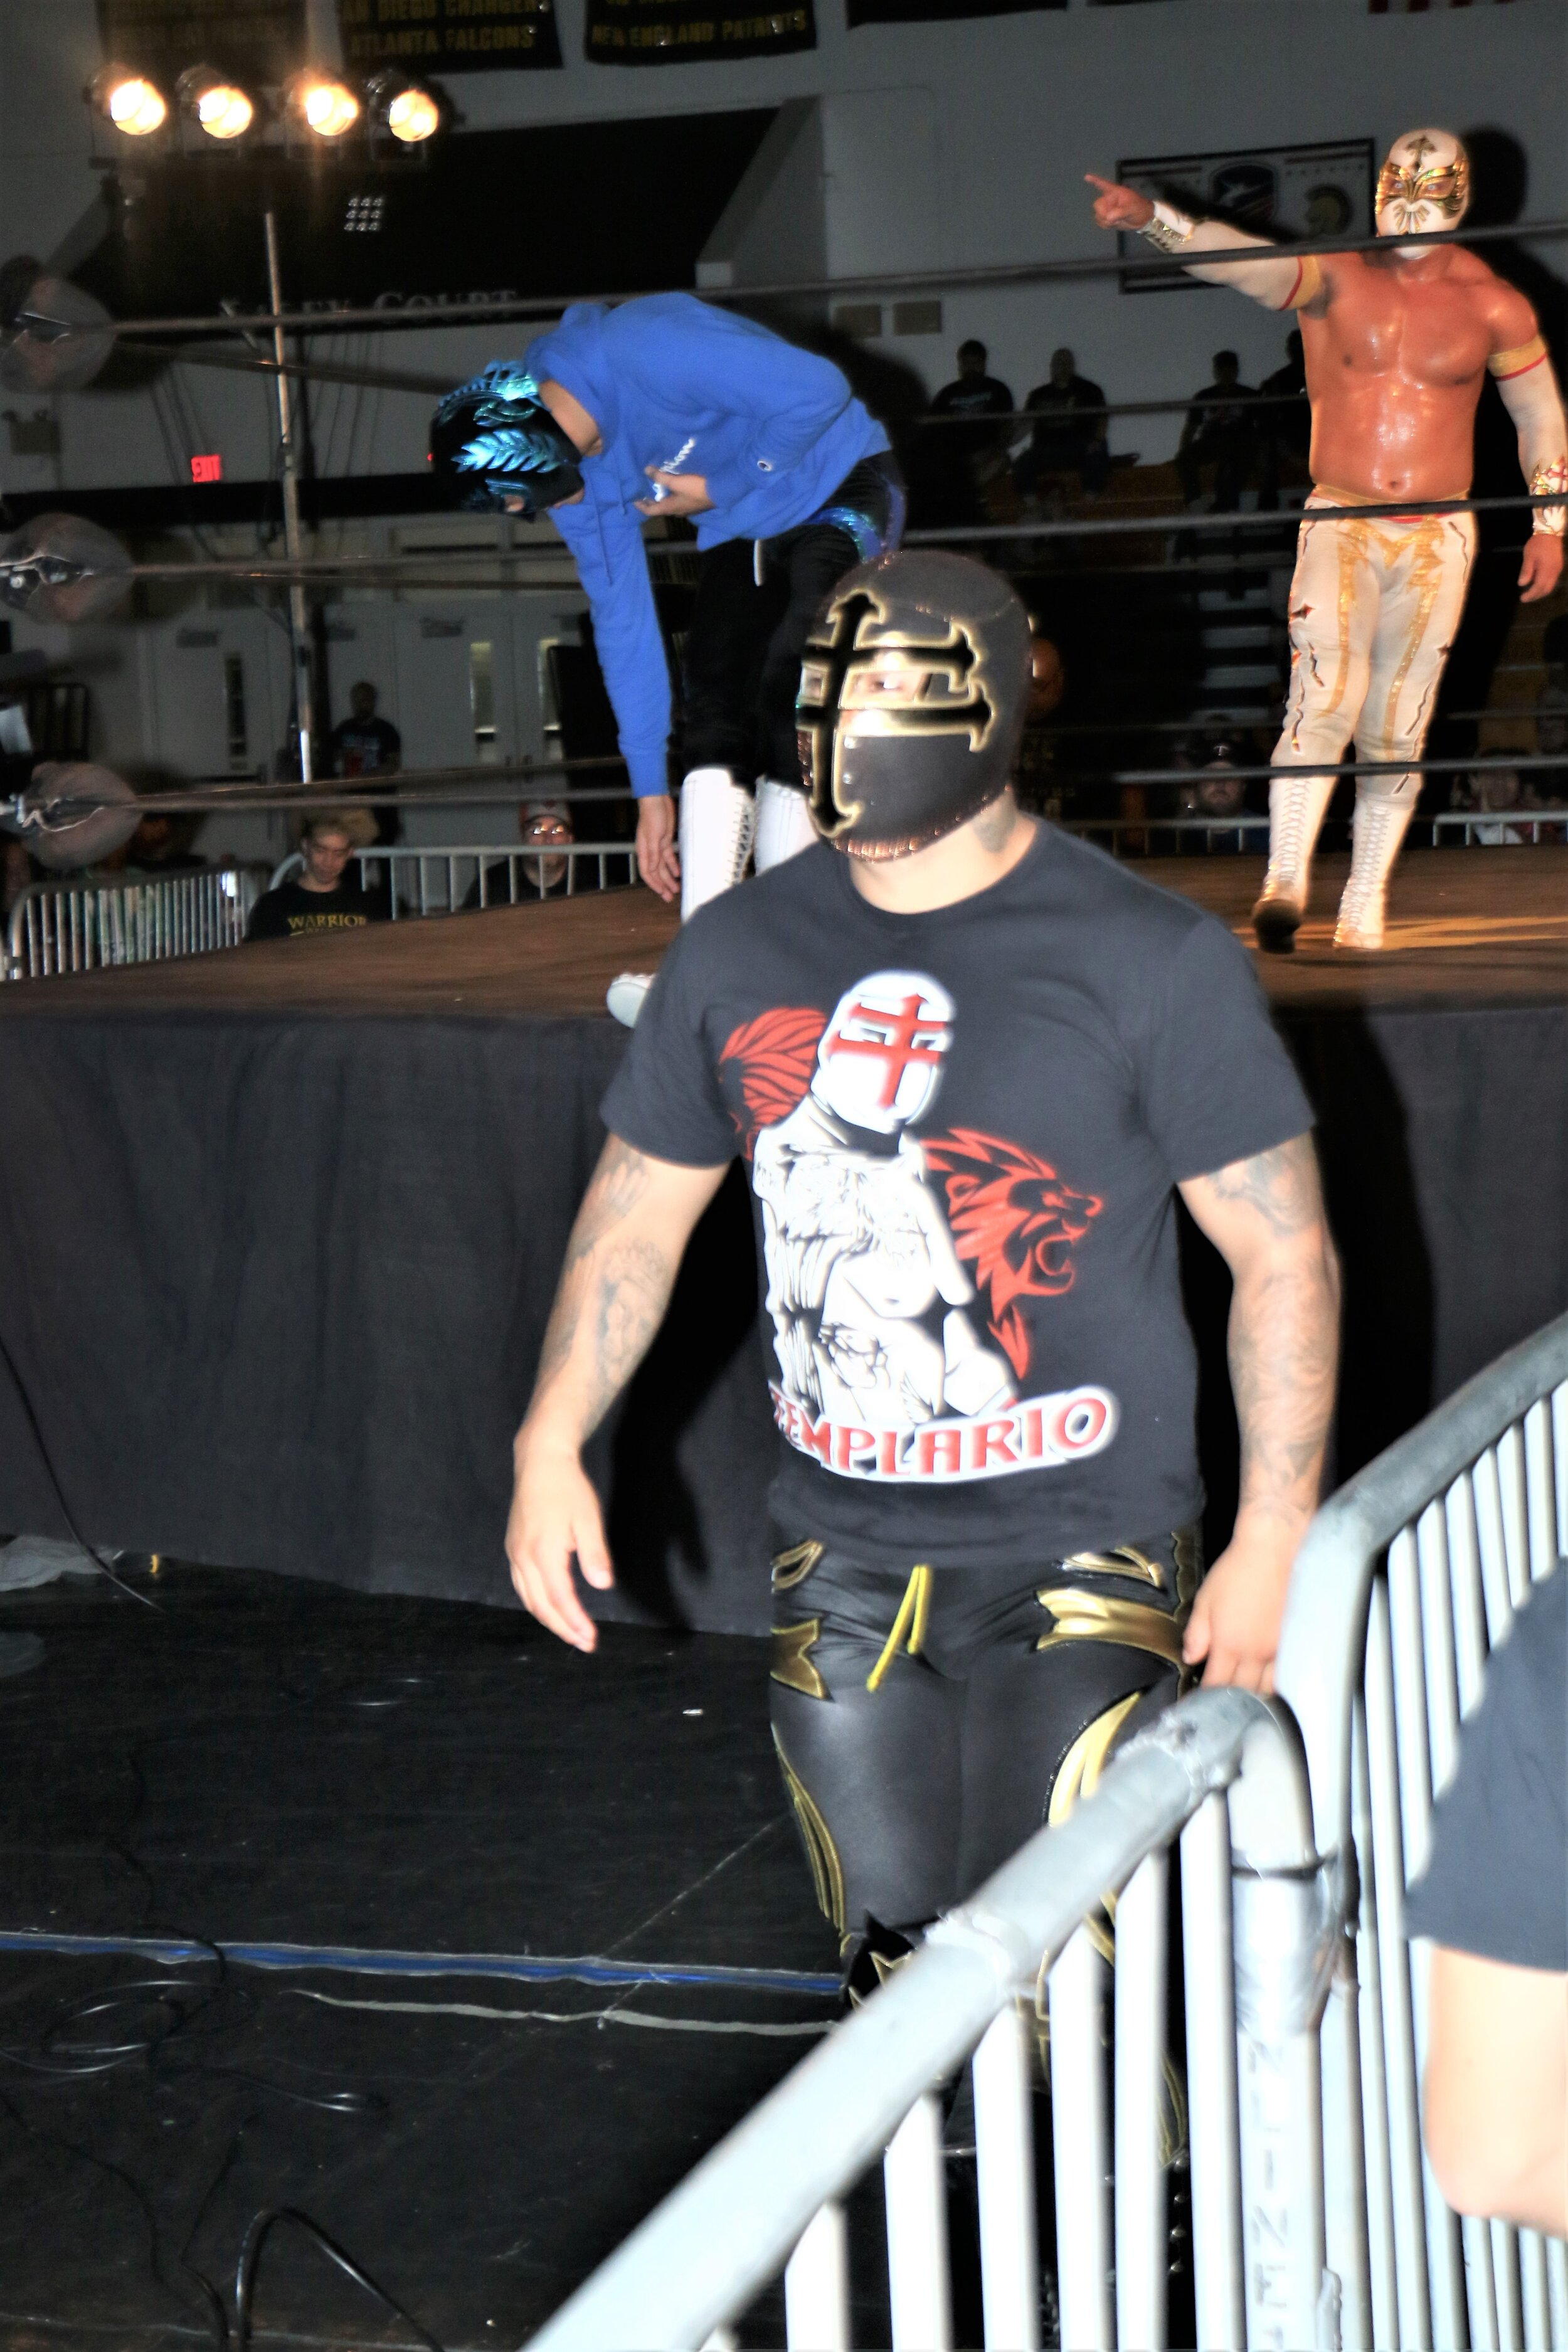 Templario walks backstage after helping out his fellow luchadors.